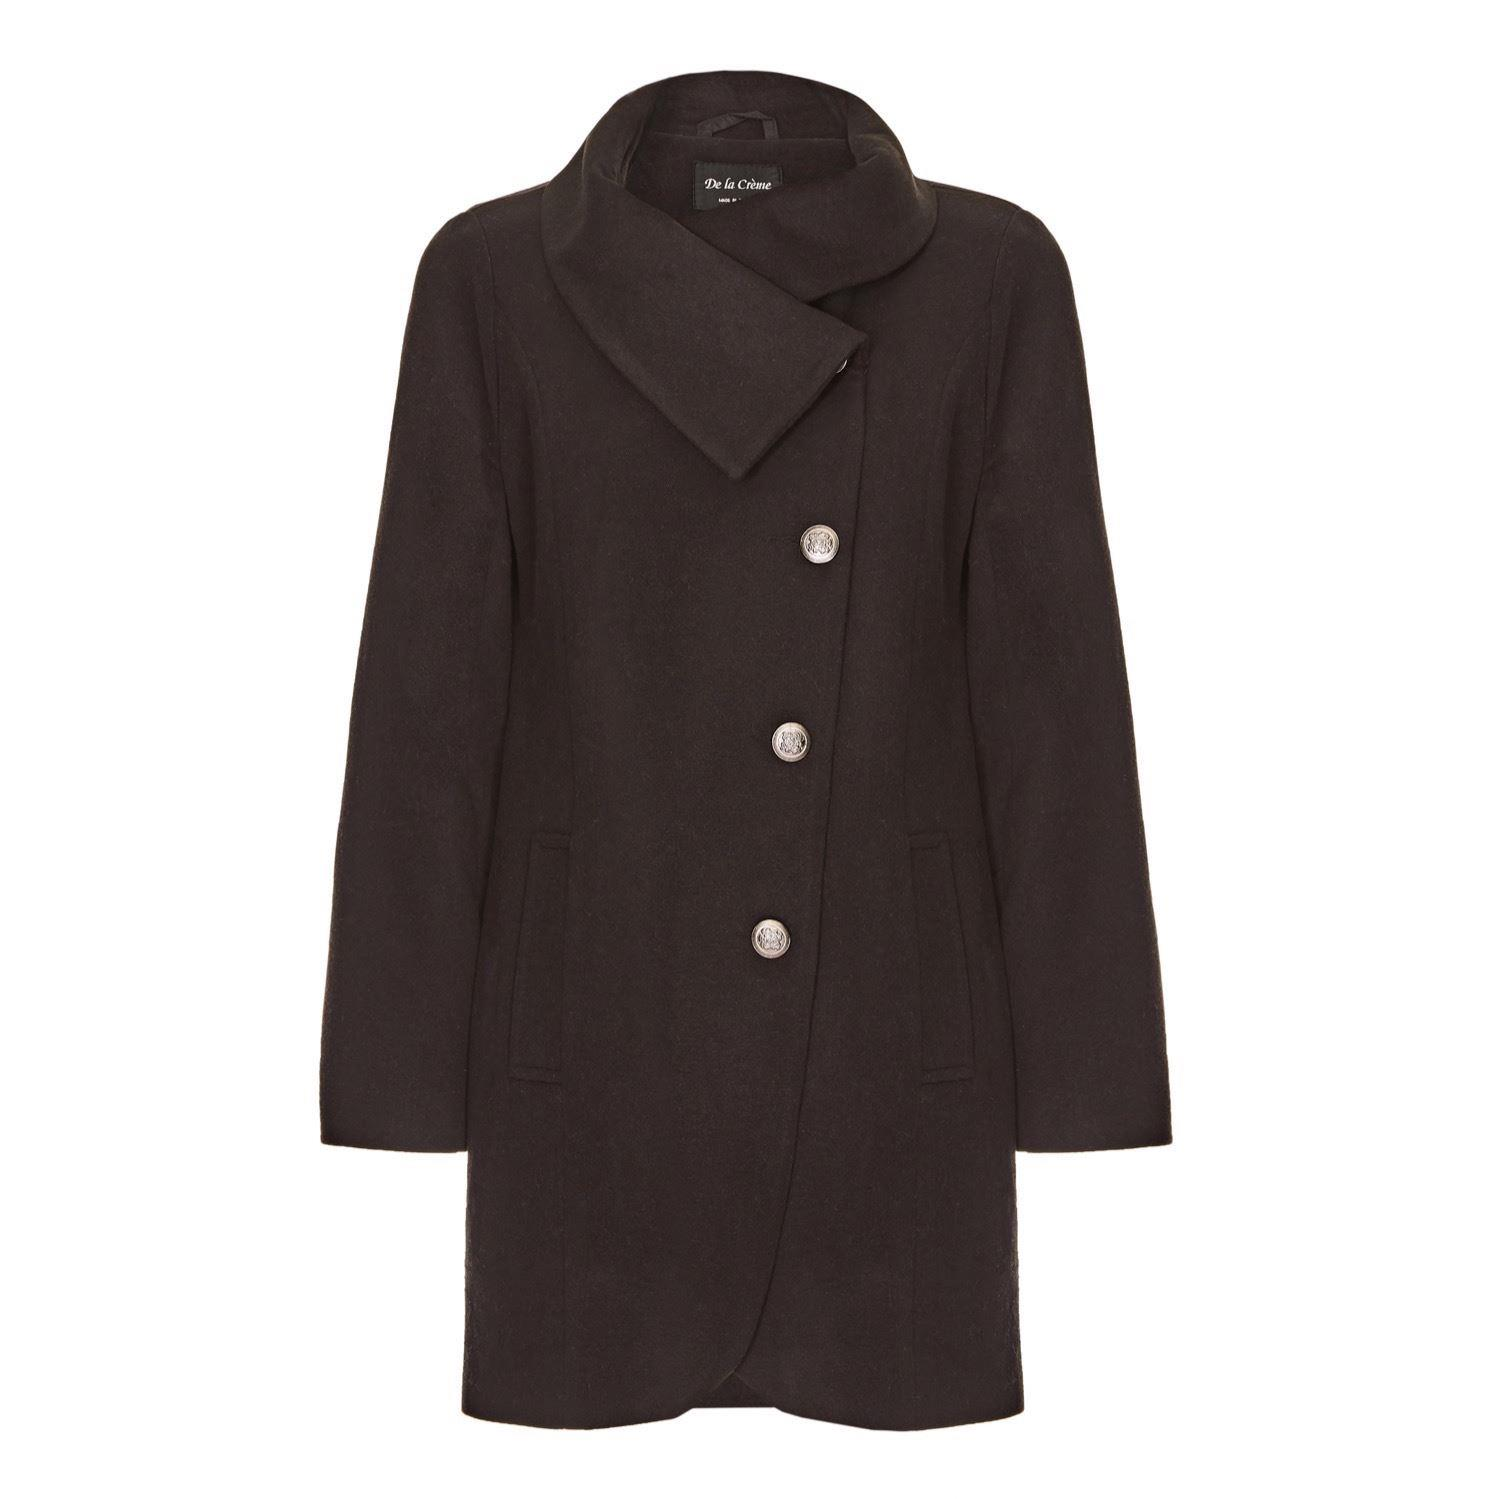 Anastasia- Women's Winter Asymmetric Coat